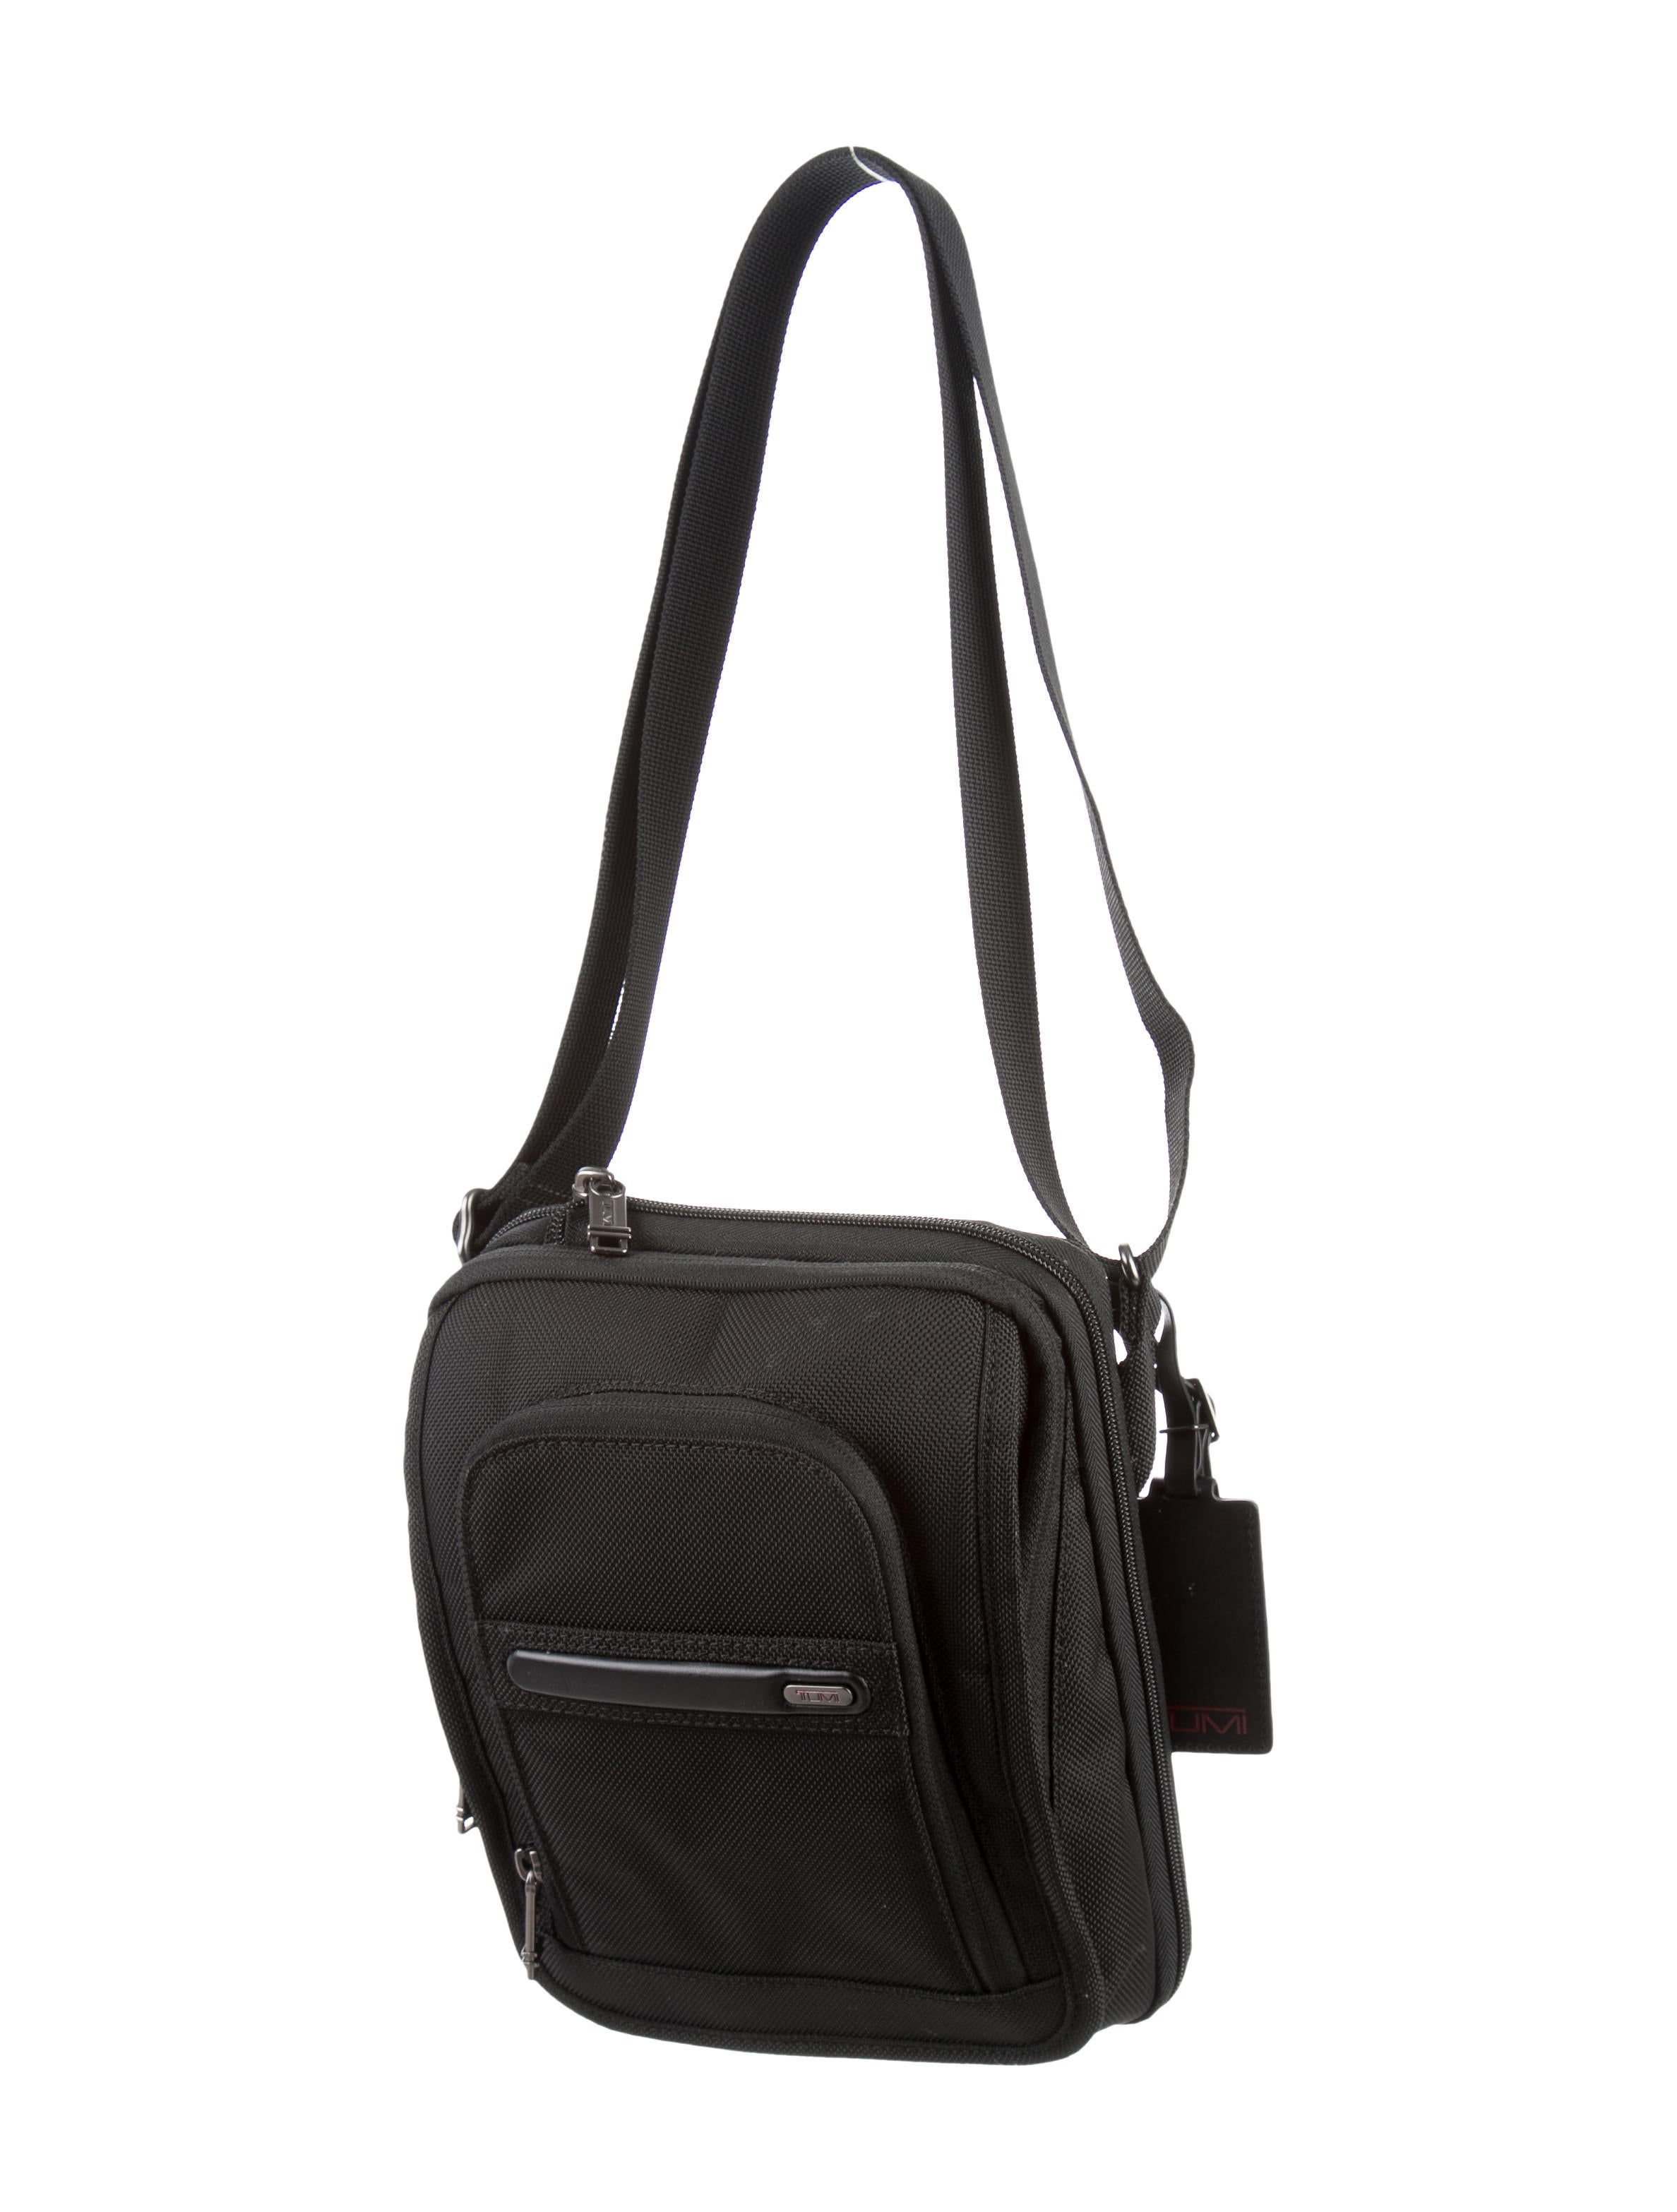 Tumi Ipad Messenger Bag Technology Tmi21062 The Realreal